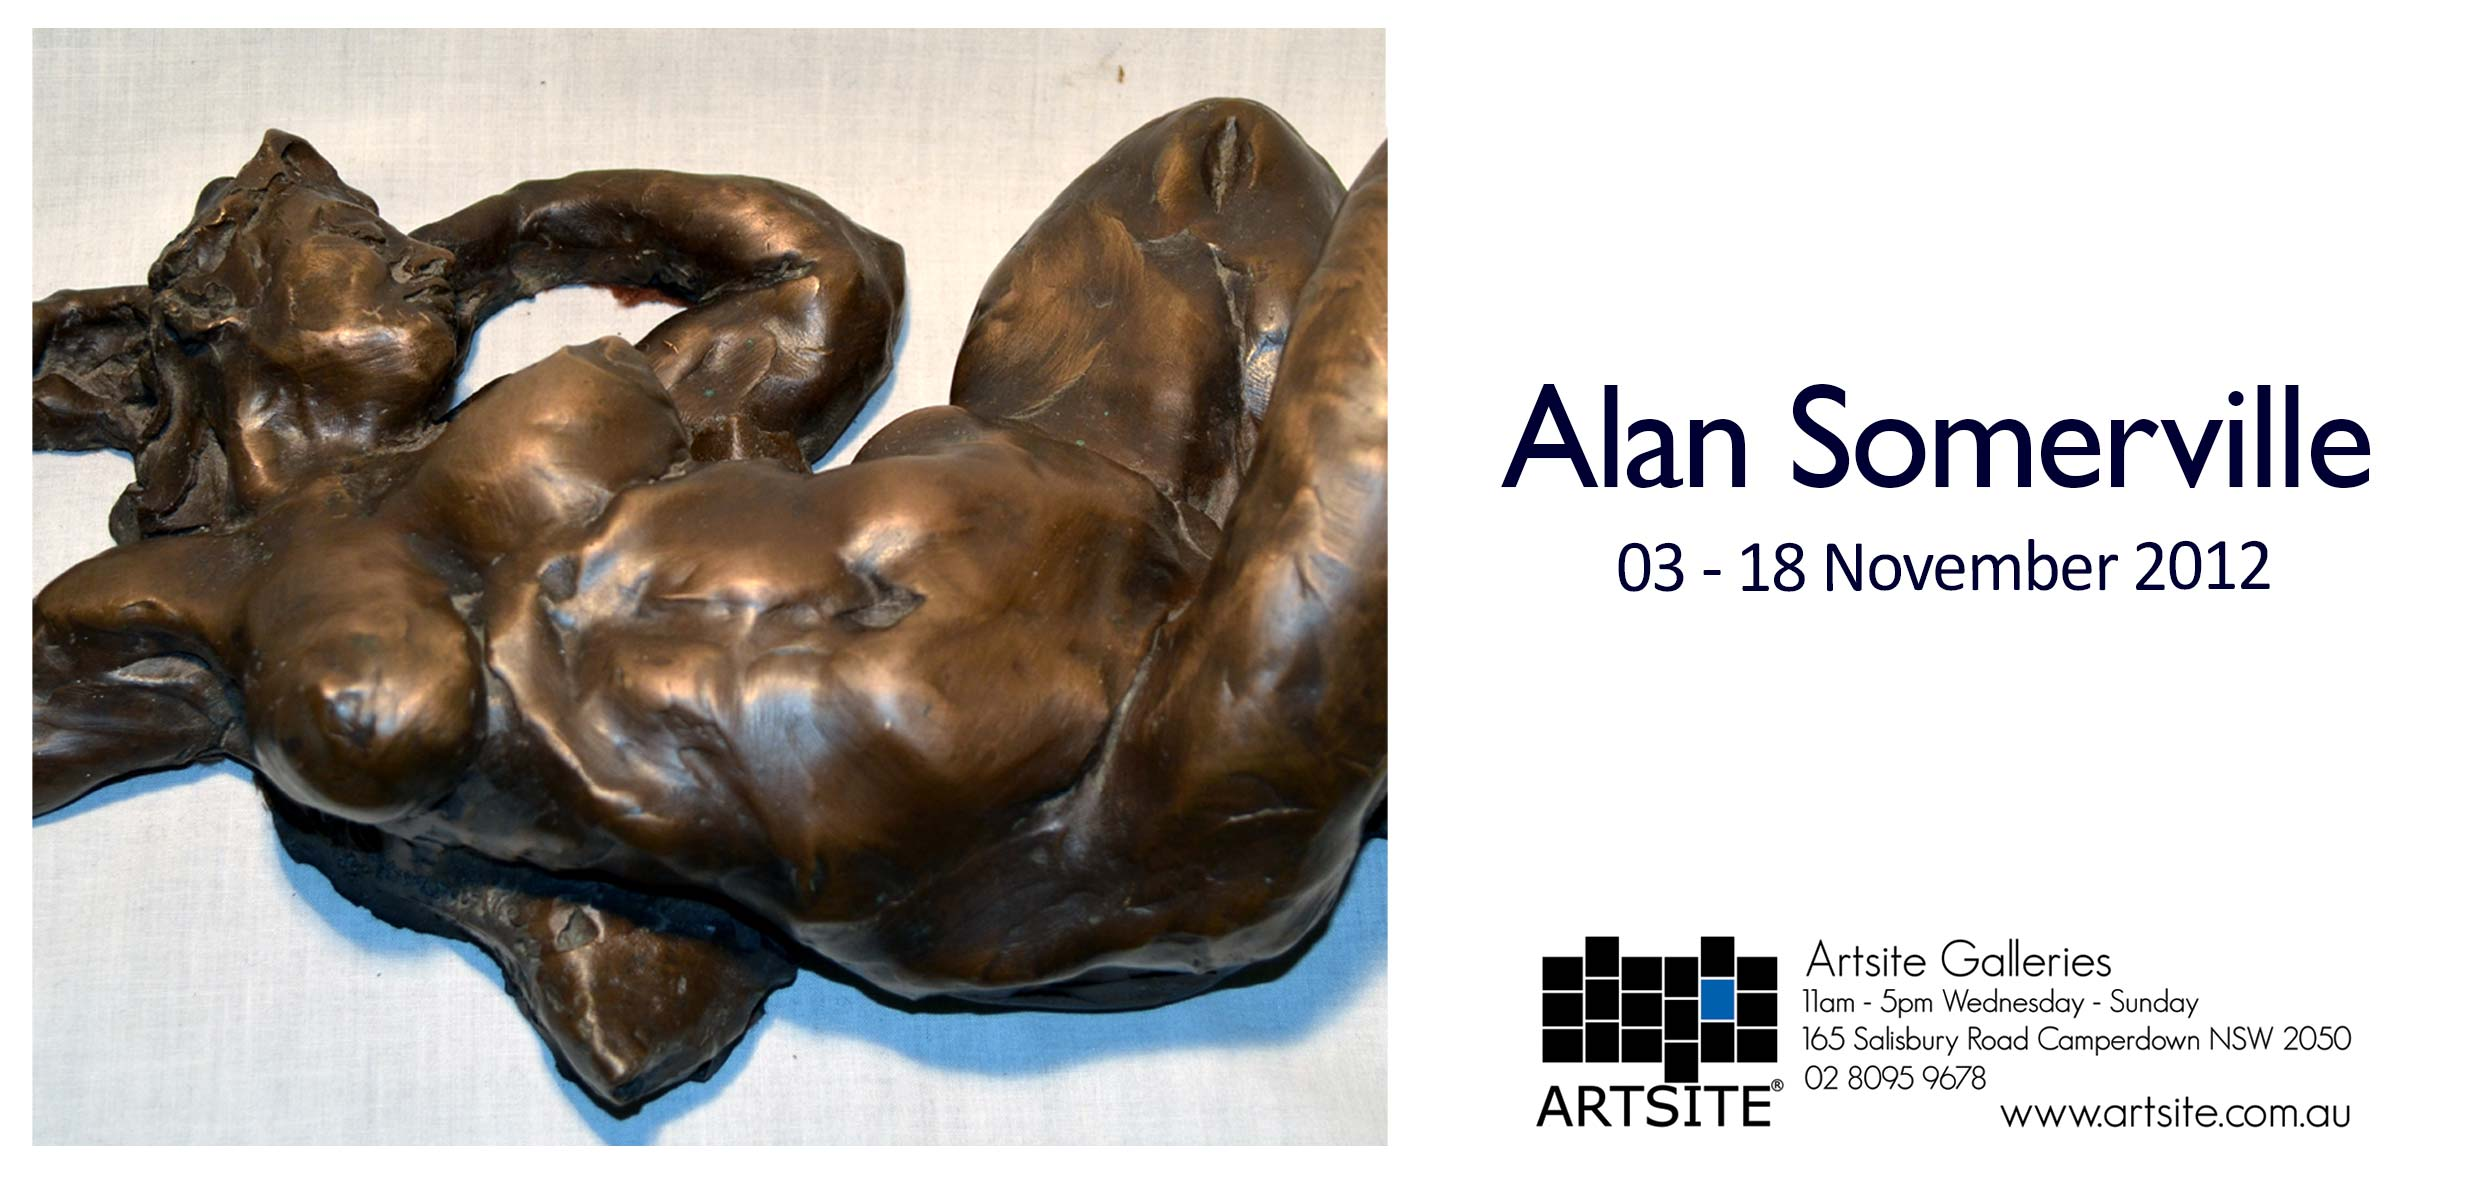 View Exhibition at Artsite Gallery, Sydney: The Unbearable Lightness of Touch - Alan Somerville. 03 - 18 November 2012